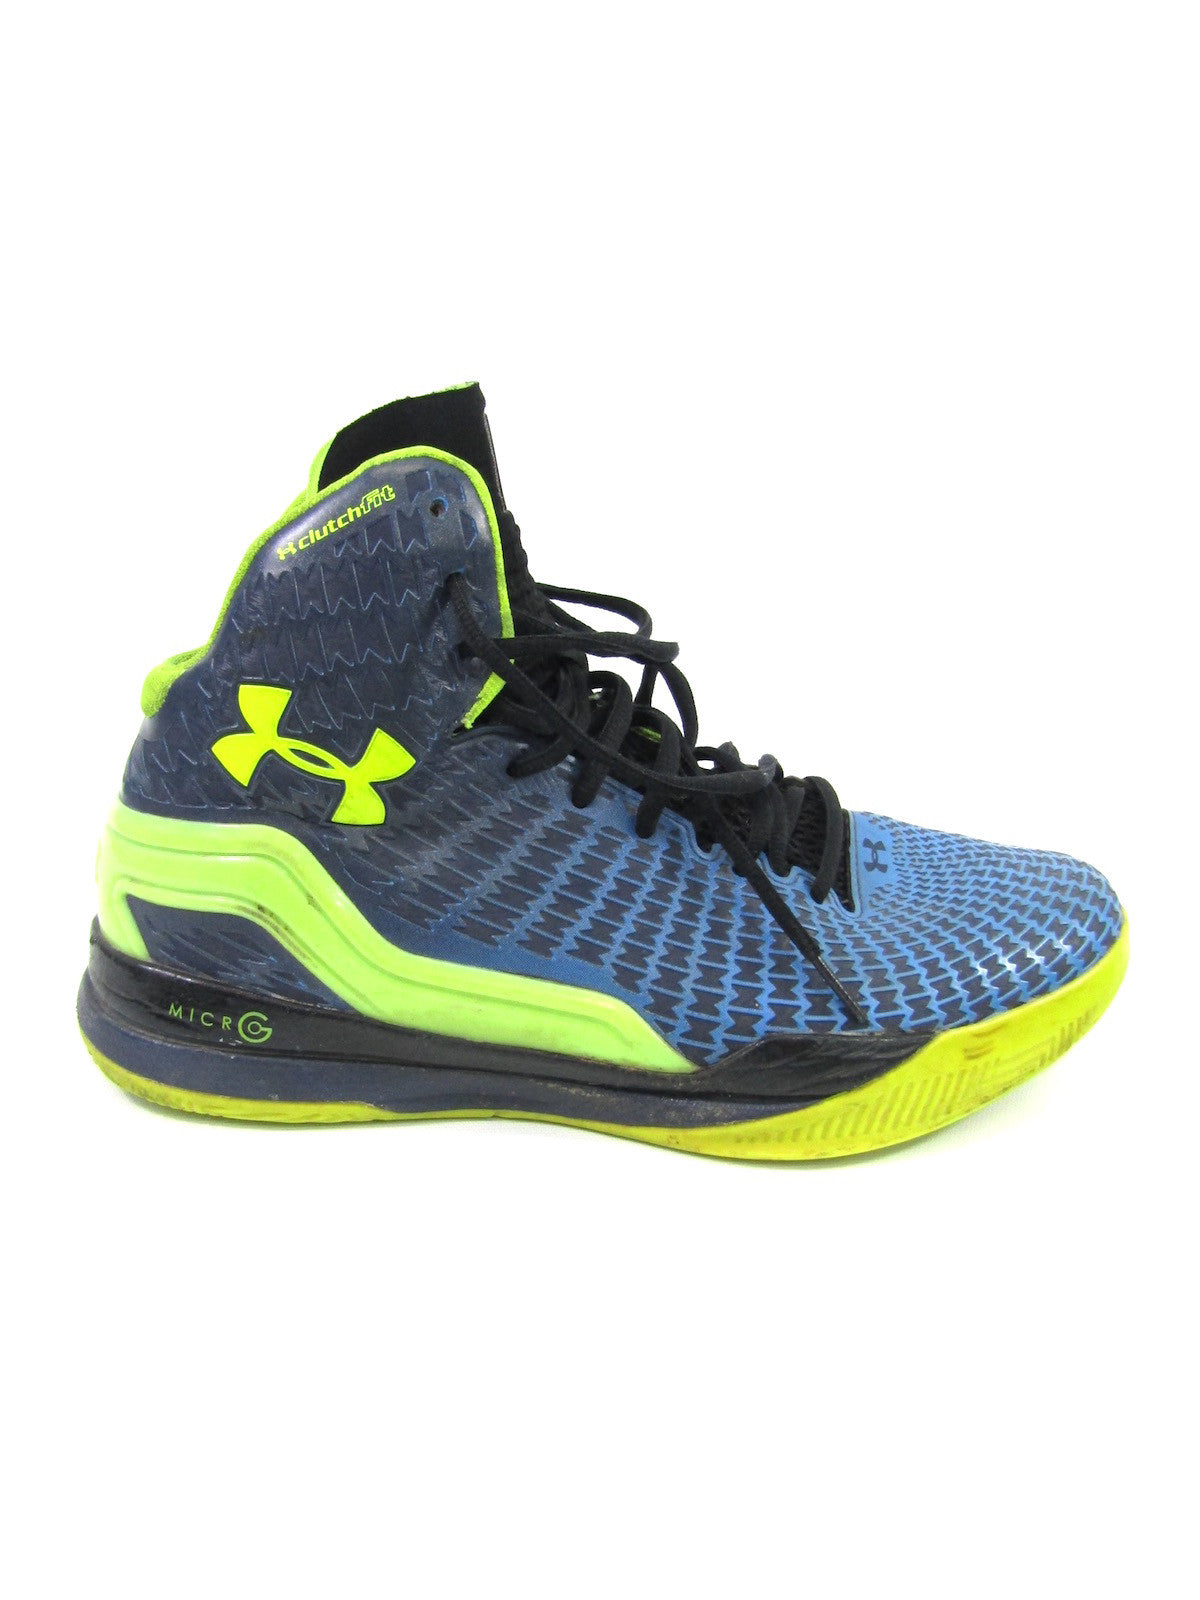 on sale 5cb14 32246 ... Micro G Clutch Fit Drive Academy Sneakers Shoes 8.5. Under Armour  Lorena's Worth